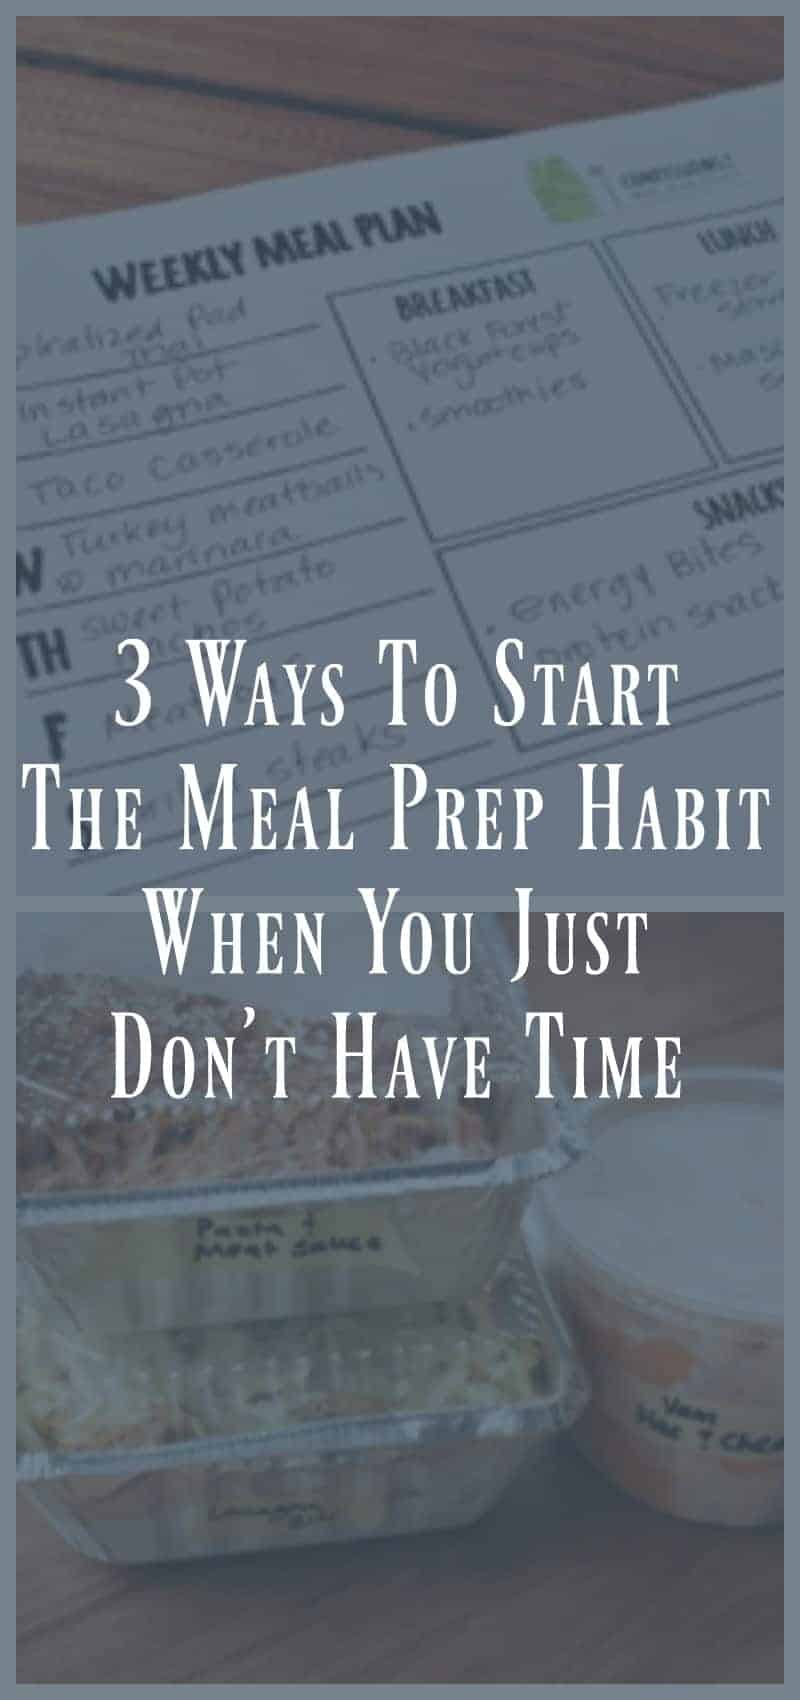 3 Ways to Start The Meal Prep Habit When You Just Don't Have Time